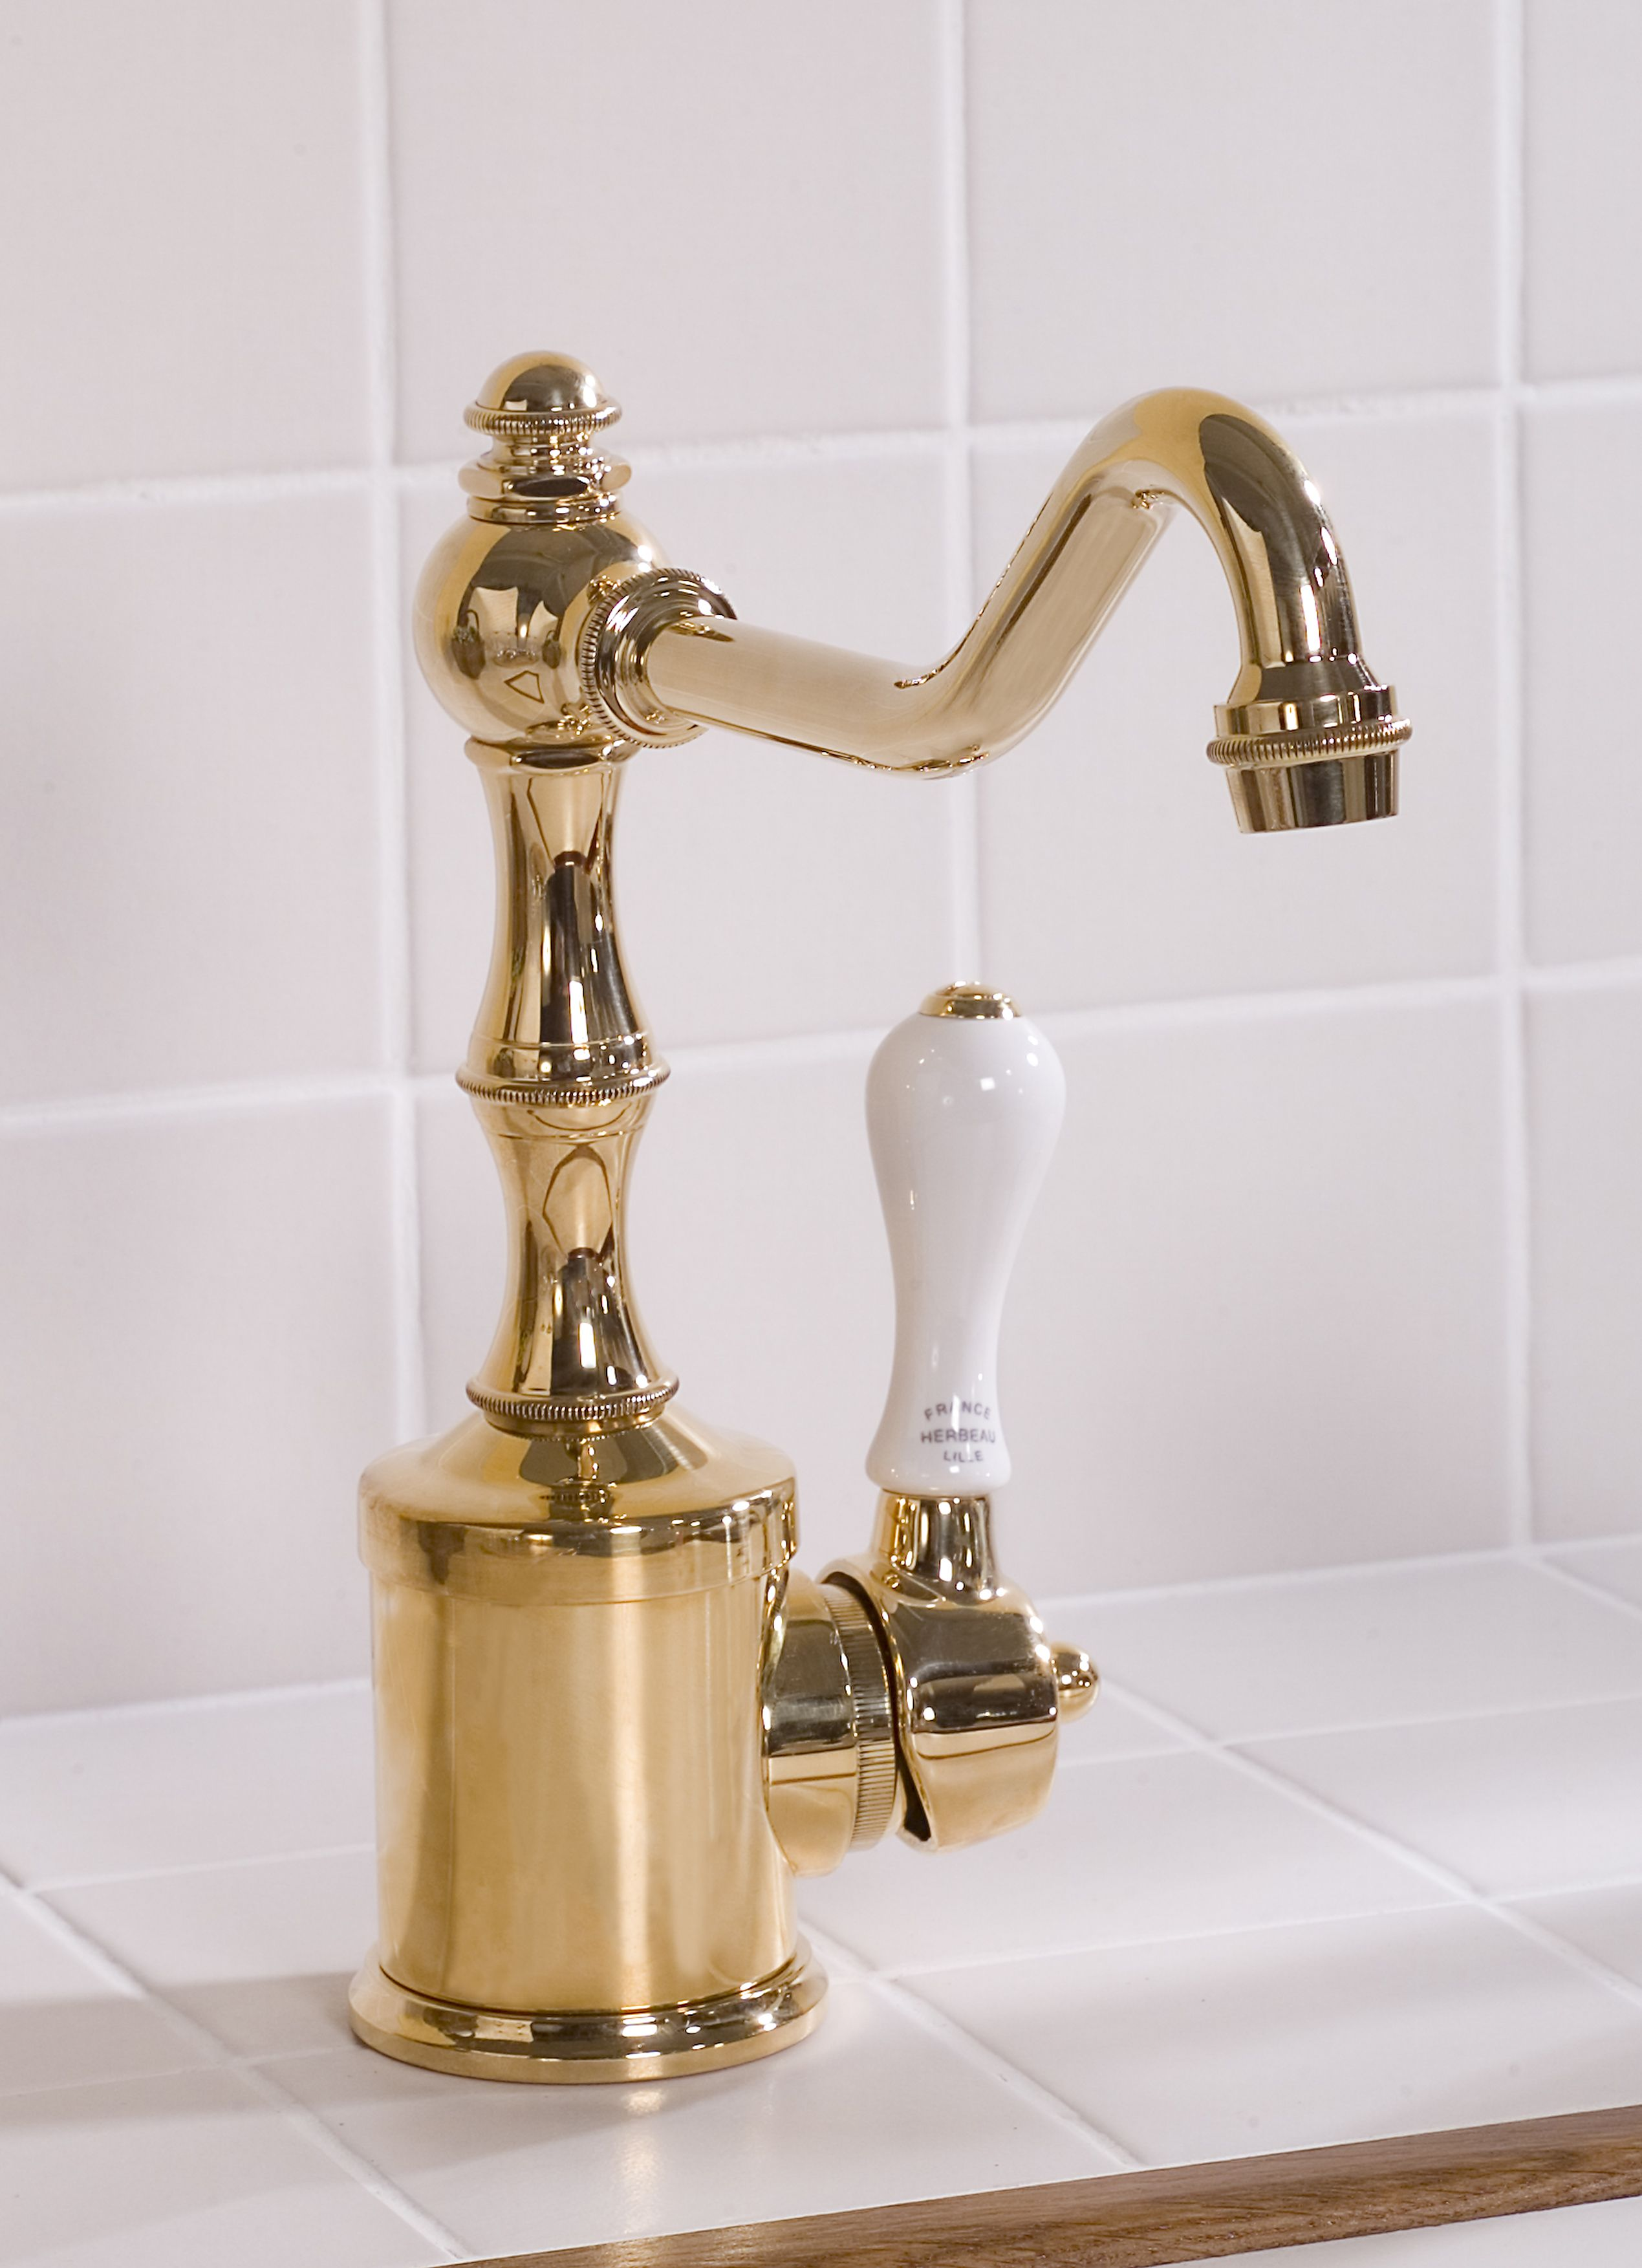 Kitchen Couture Herbeau Royale faucet in Polished Brass | Herbeau ...